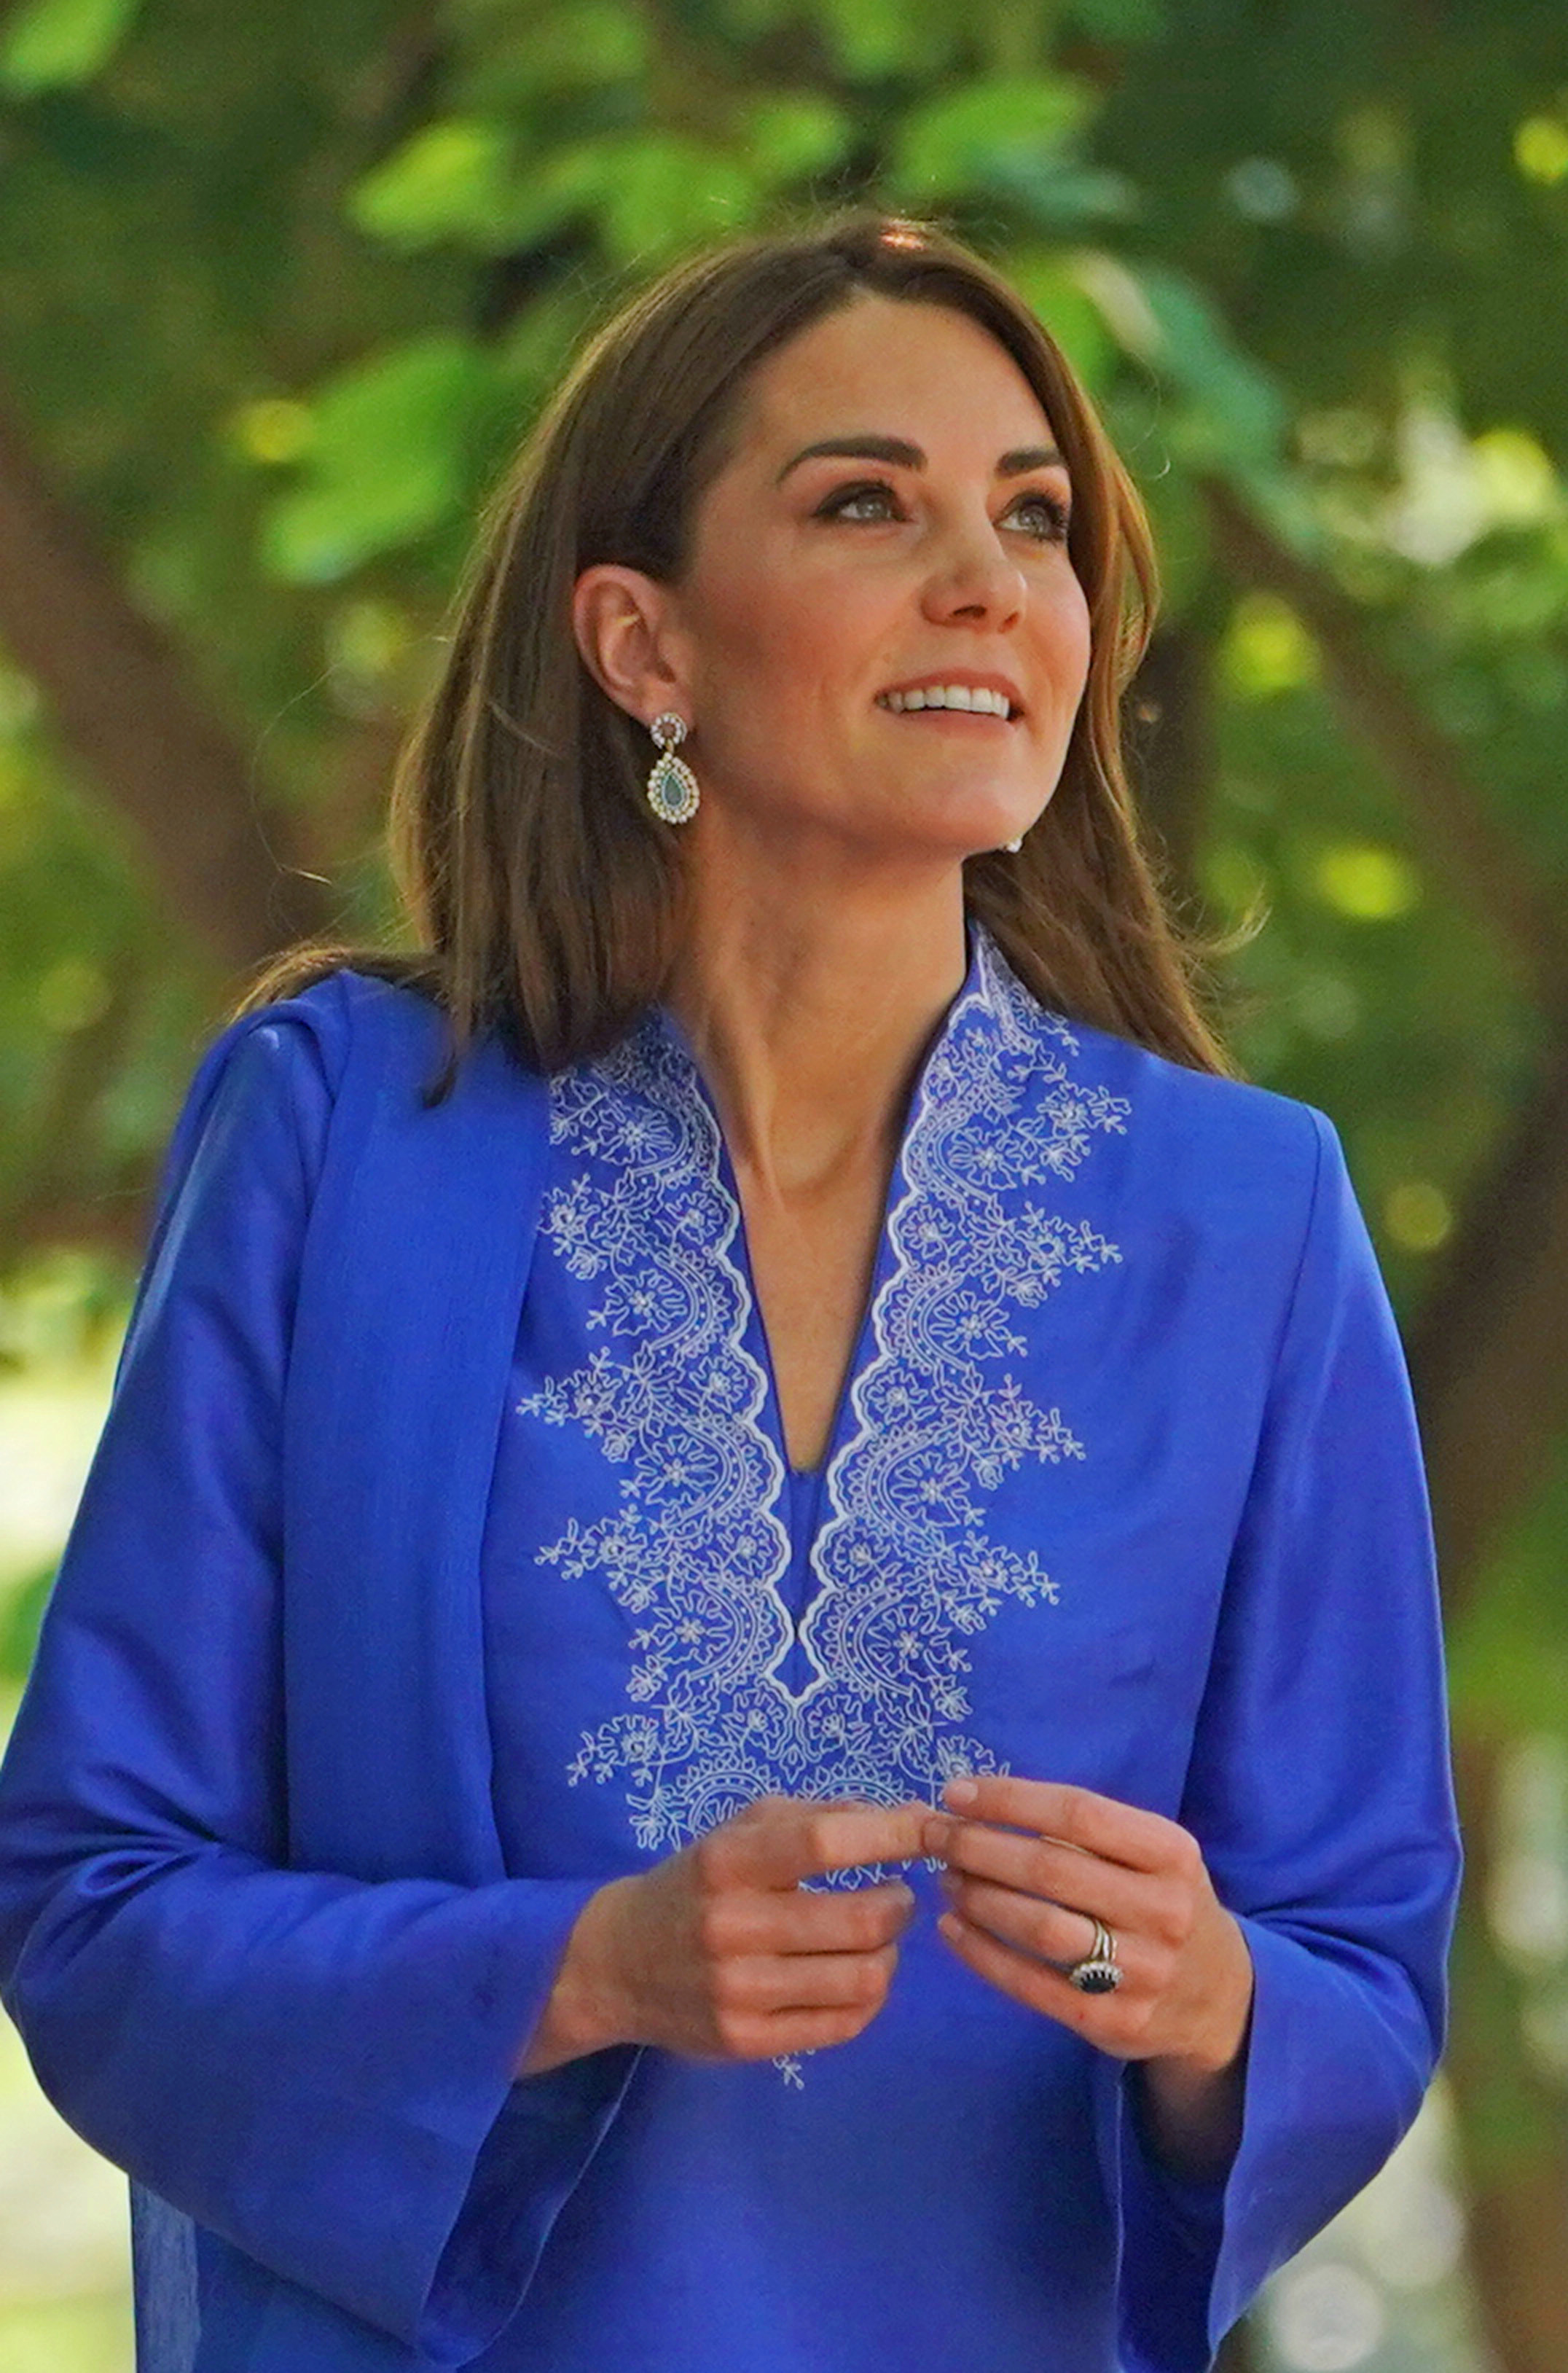 The Duchess of Cambridge showed off her earrings that she paired with her blue kurta